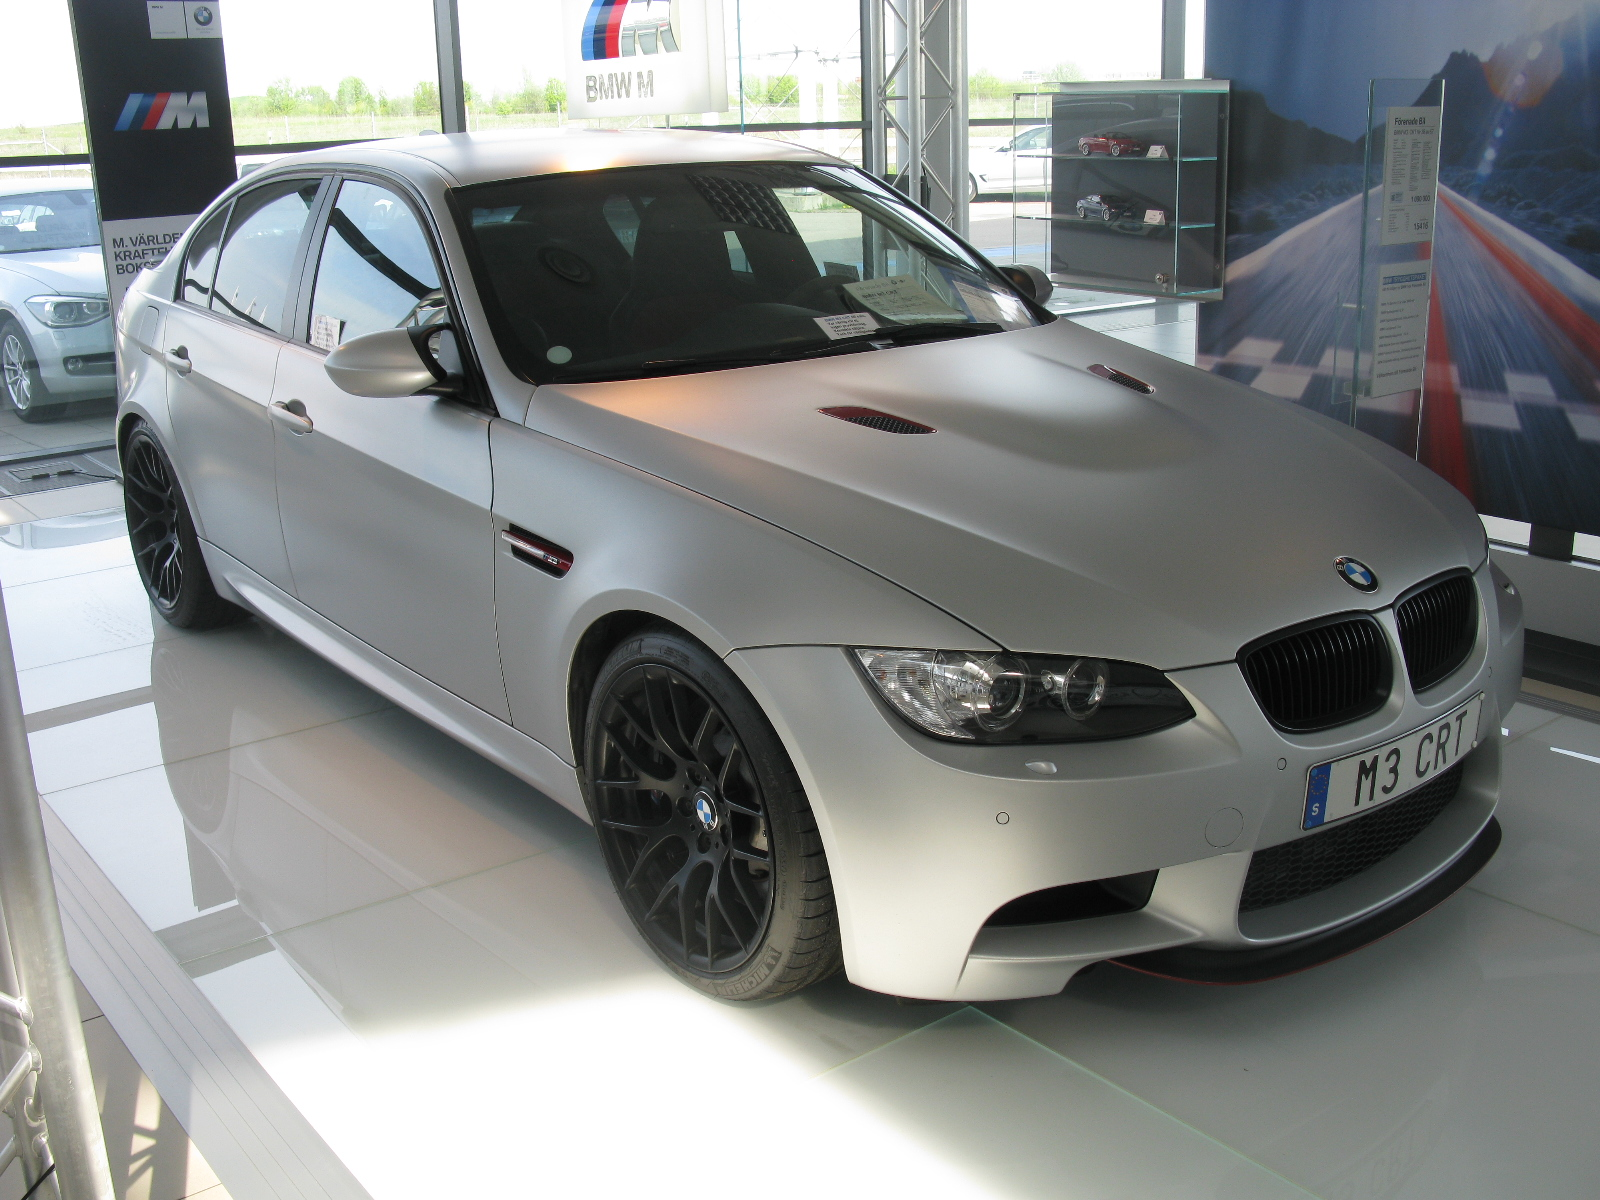 File:BMW M3 CRT E90 (15491649860).jpg - Wikimedia Commons